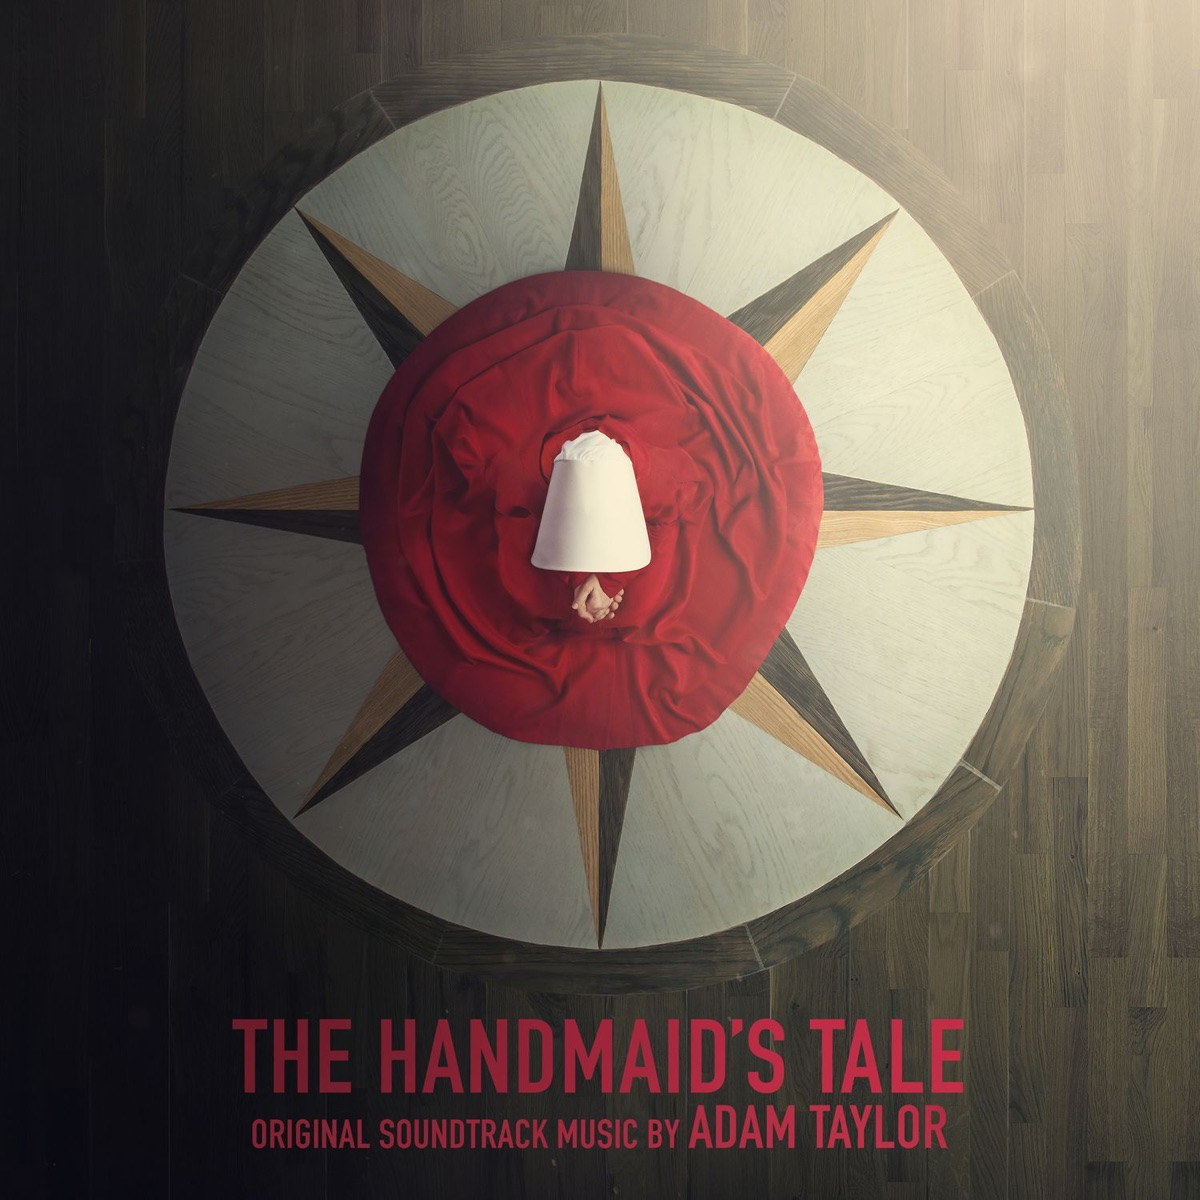 the color purple and handmaids tale The handmaid's tale: recurring symbolism of color in 'the handmaids tale' written by margaret atwood in 1985, color symbolism is extremely importantcolour symbolisym represent abstract ideas or concepts that help us to understand the book better.